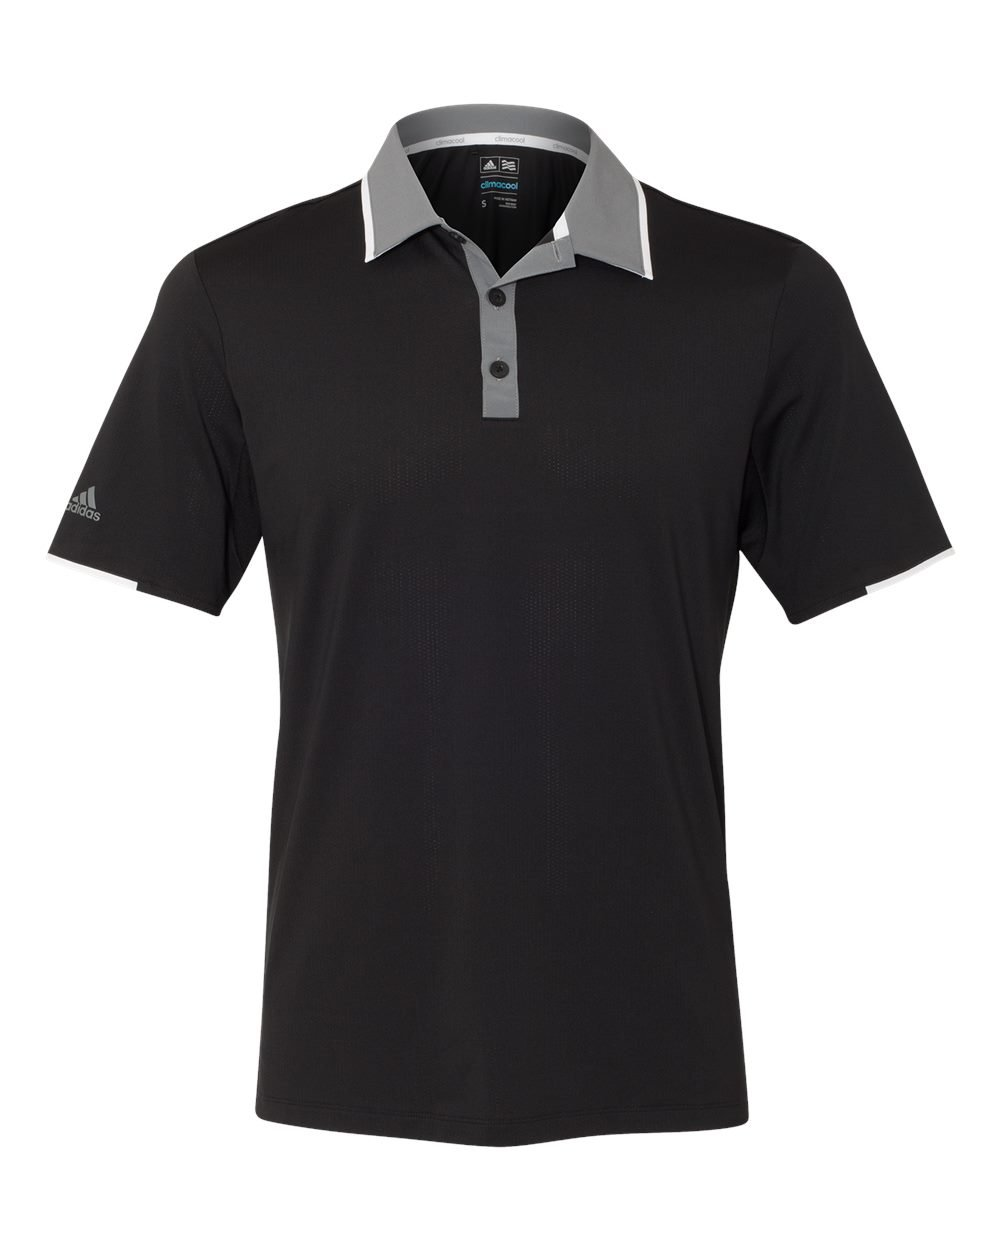 adidas Golf Mens Climacool Performance Polo (A166) -Black/Vist -3XL